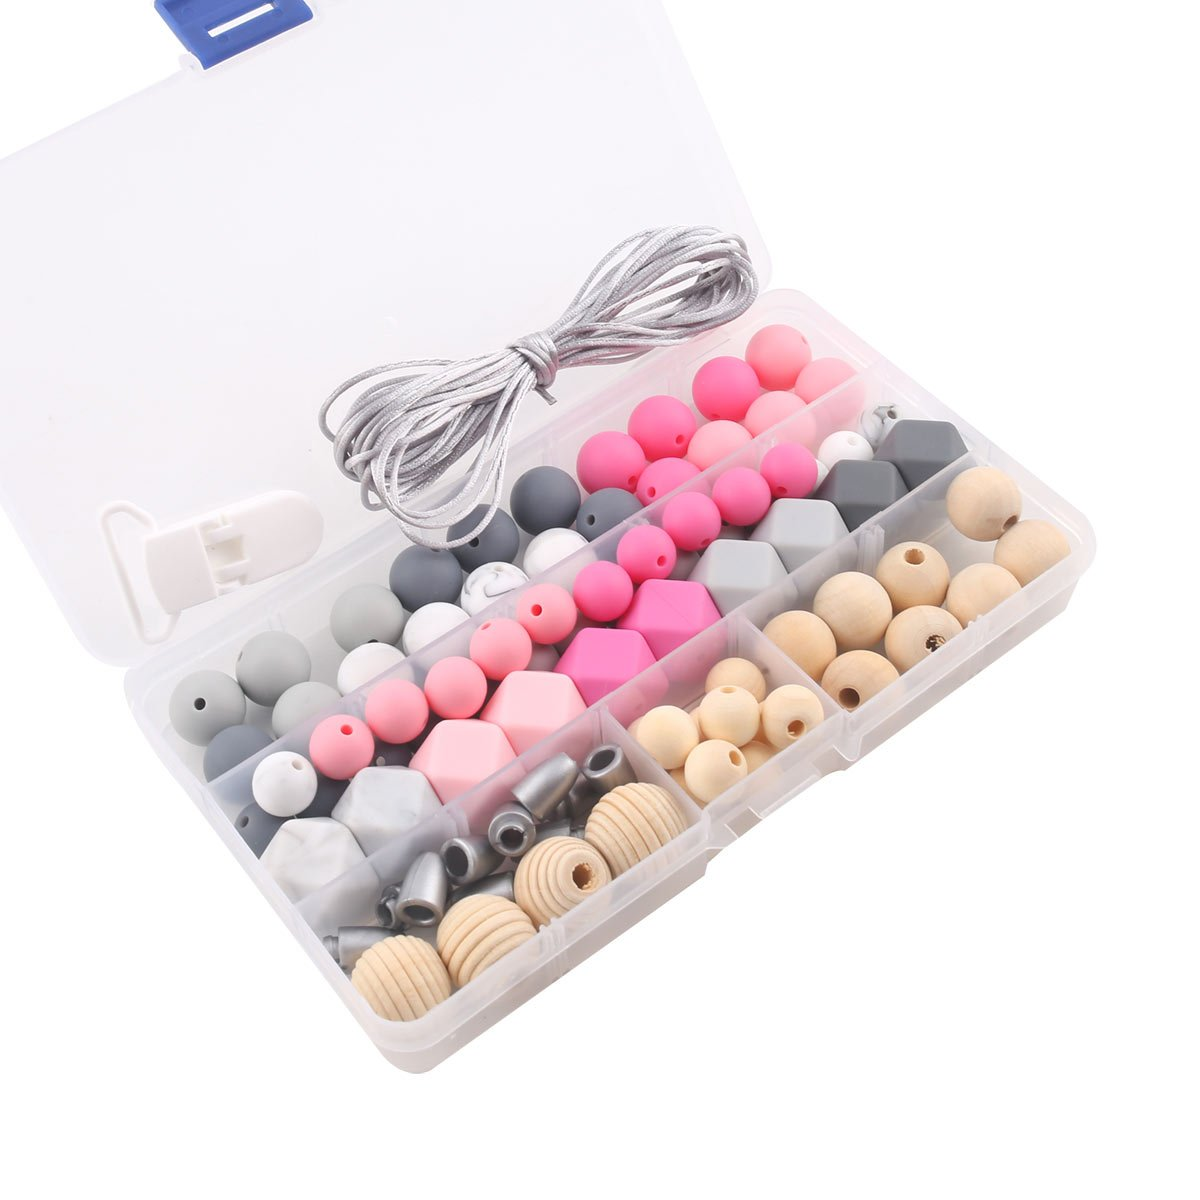 Silicone Teething Beads Kit Baby Teething Beads Pacifier Clip Wooden Teethers DIY Jewelry Chewable Nursing Necklace Accessories